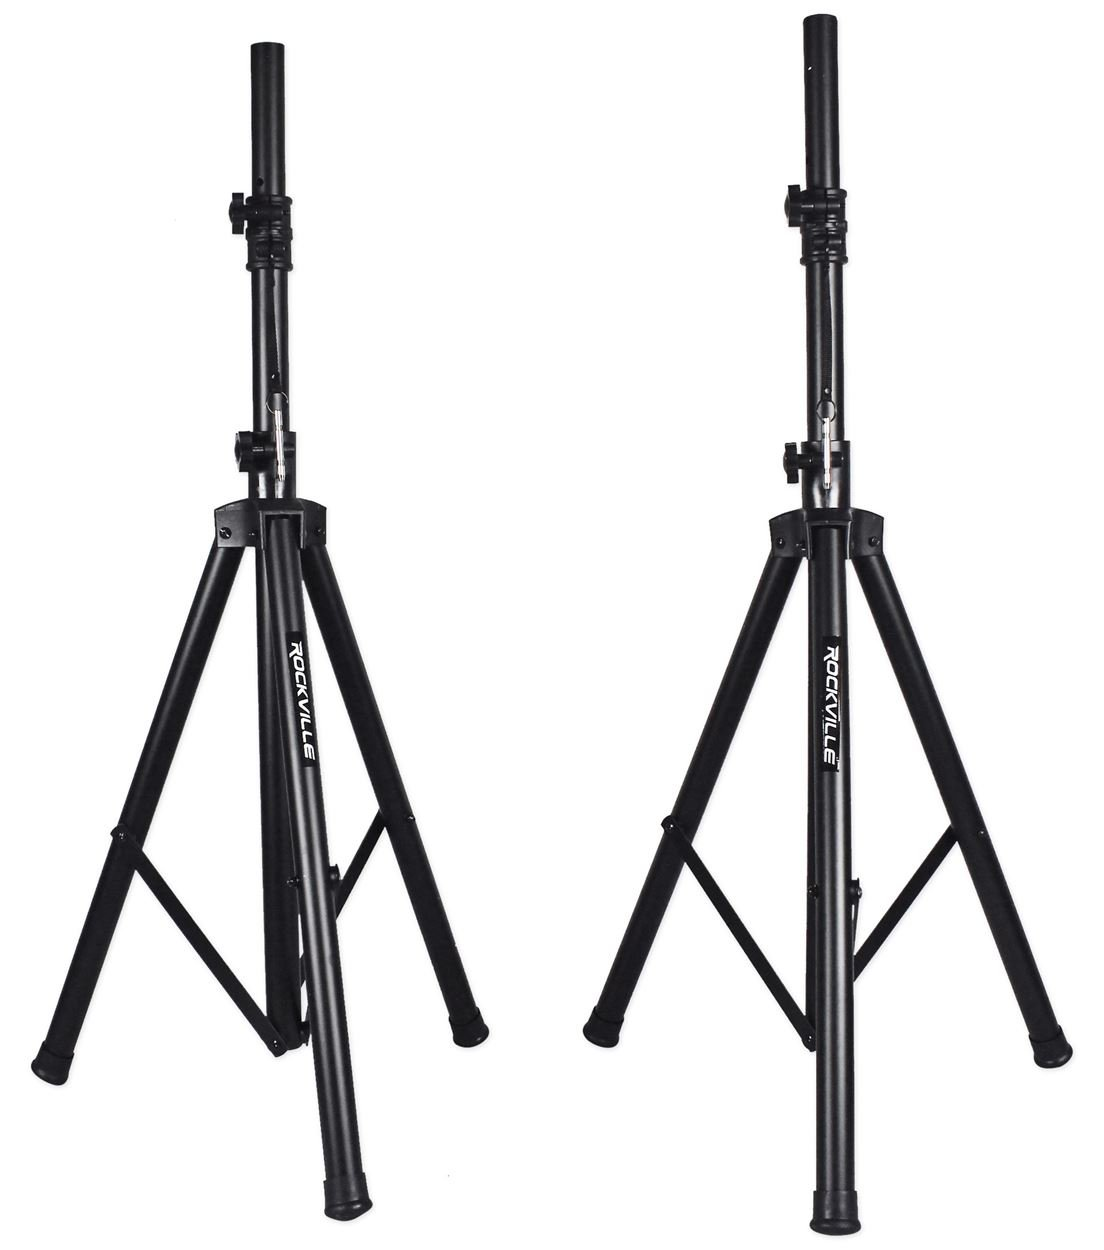 Rockville Rpg122k Dual 12 Powered Speakers Bluetooth Speaker Cabi Wiring Diagrams As Well 4 Ohm Sub To 2 Mic Stands Cables Musical Instruments